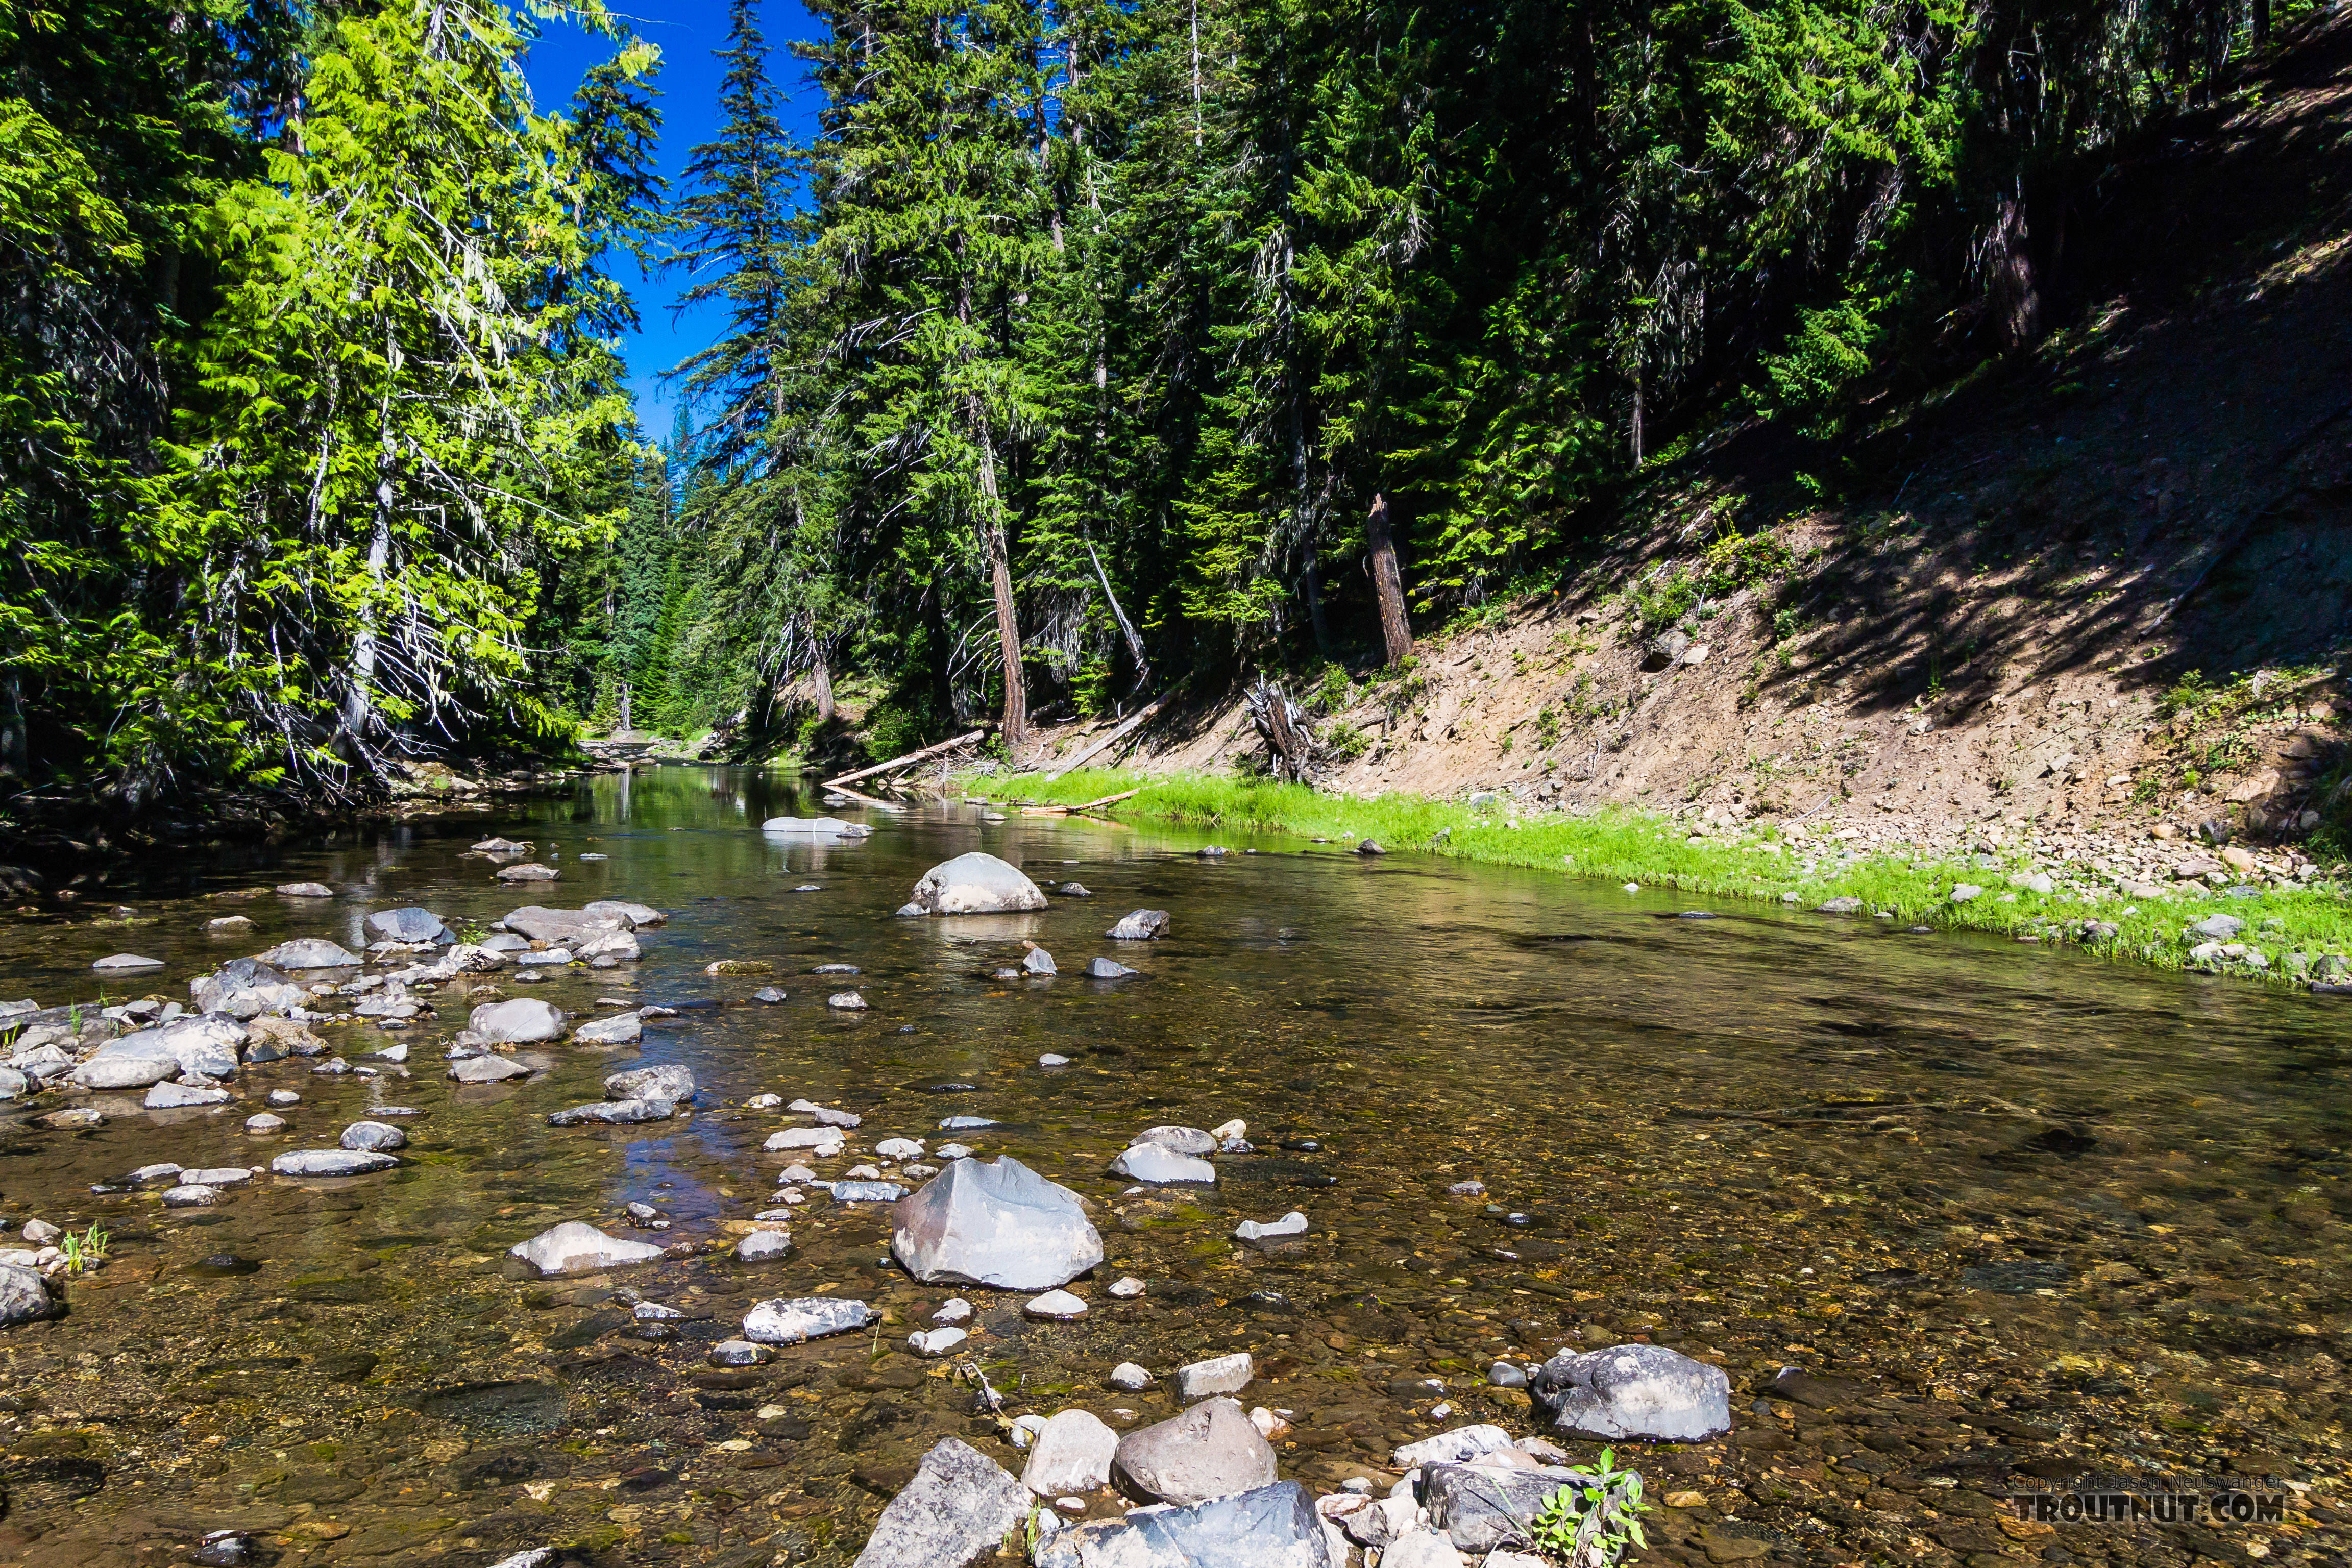 From the Little Naches River in Washington.